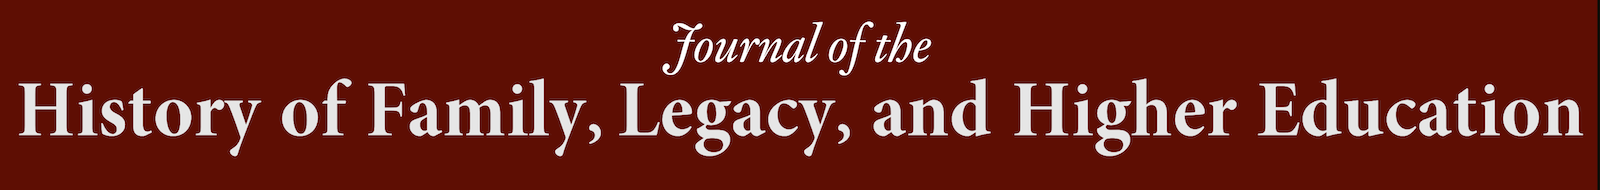 Journal of the History of Family, Legacy, and Higher Education